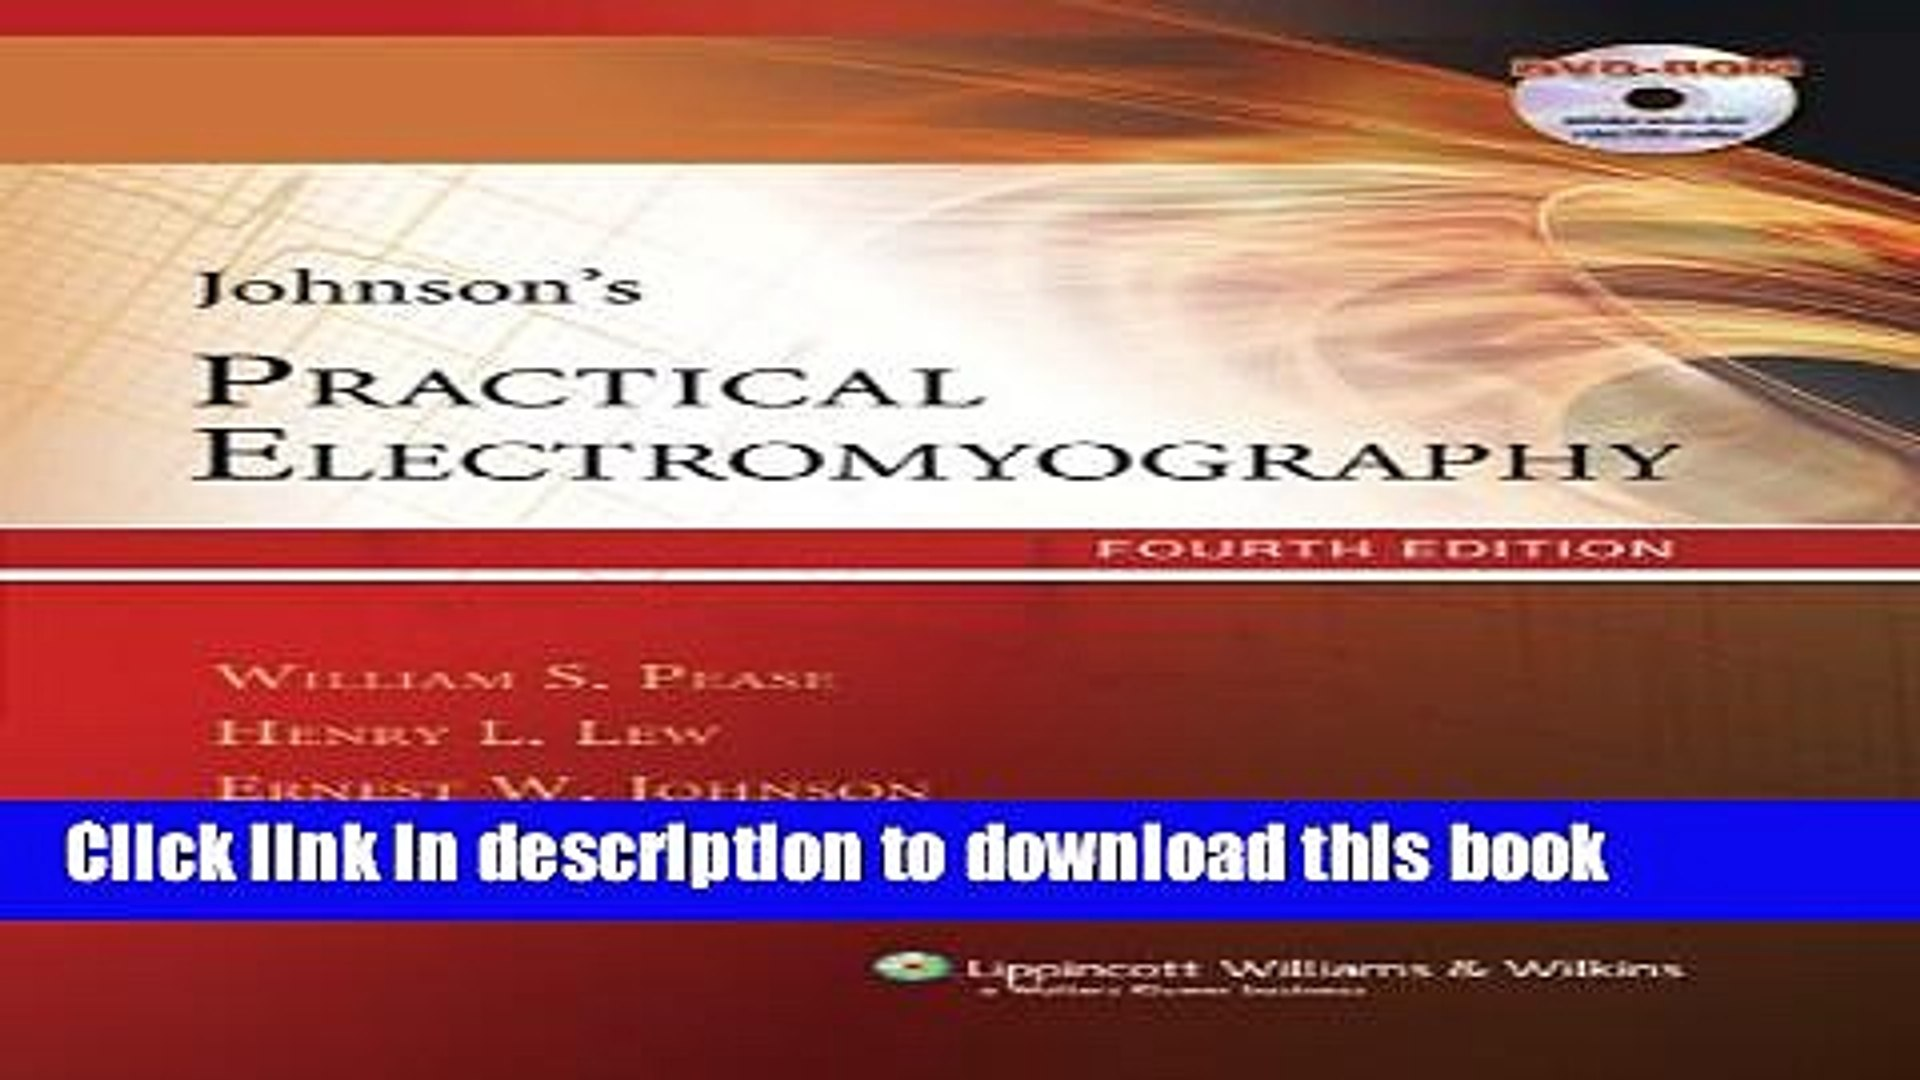 Practical Electromyography Download Free - Read Unicron 0 ...